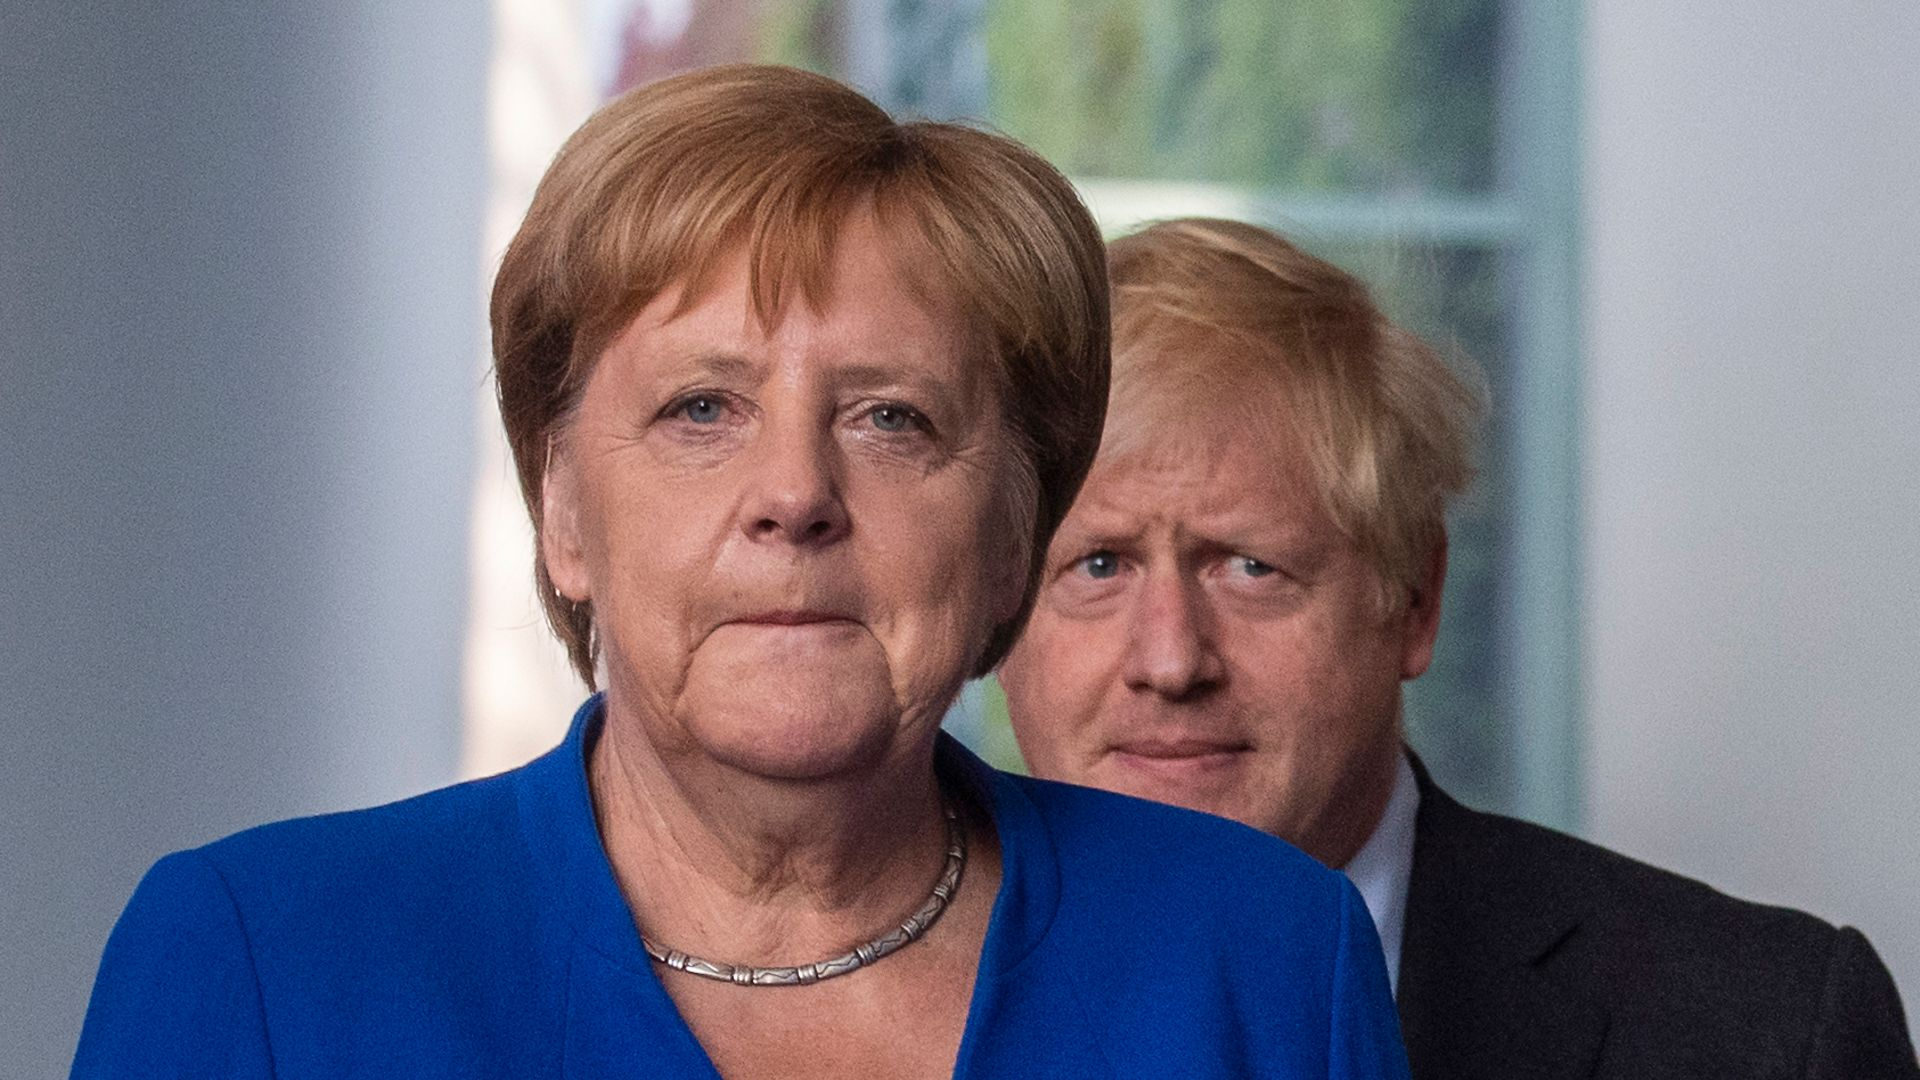 The worst is behind her: German chancellor Angela Merkel (question three) - Credit: JOHN MACDOUGALL/AFP via Getty Images